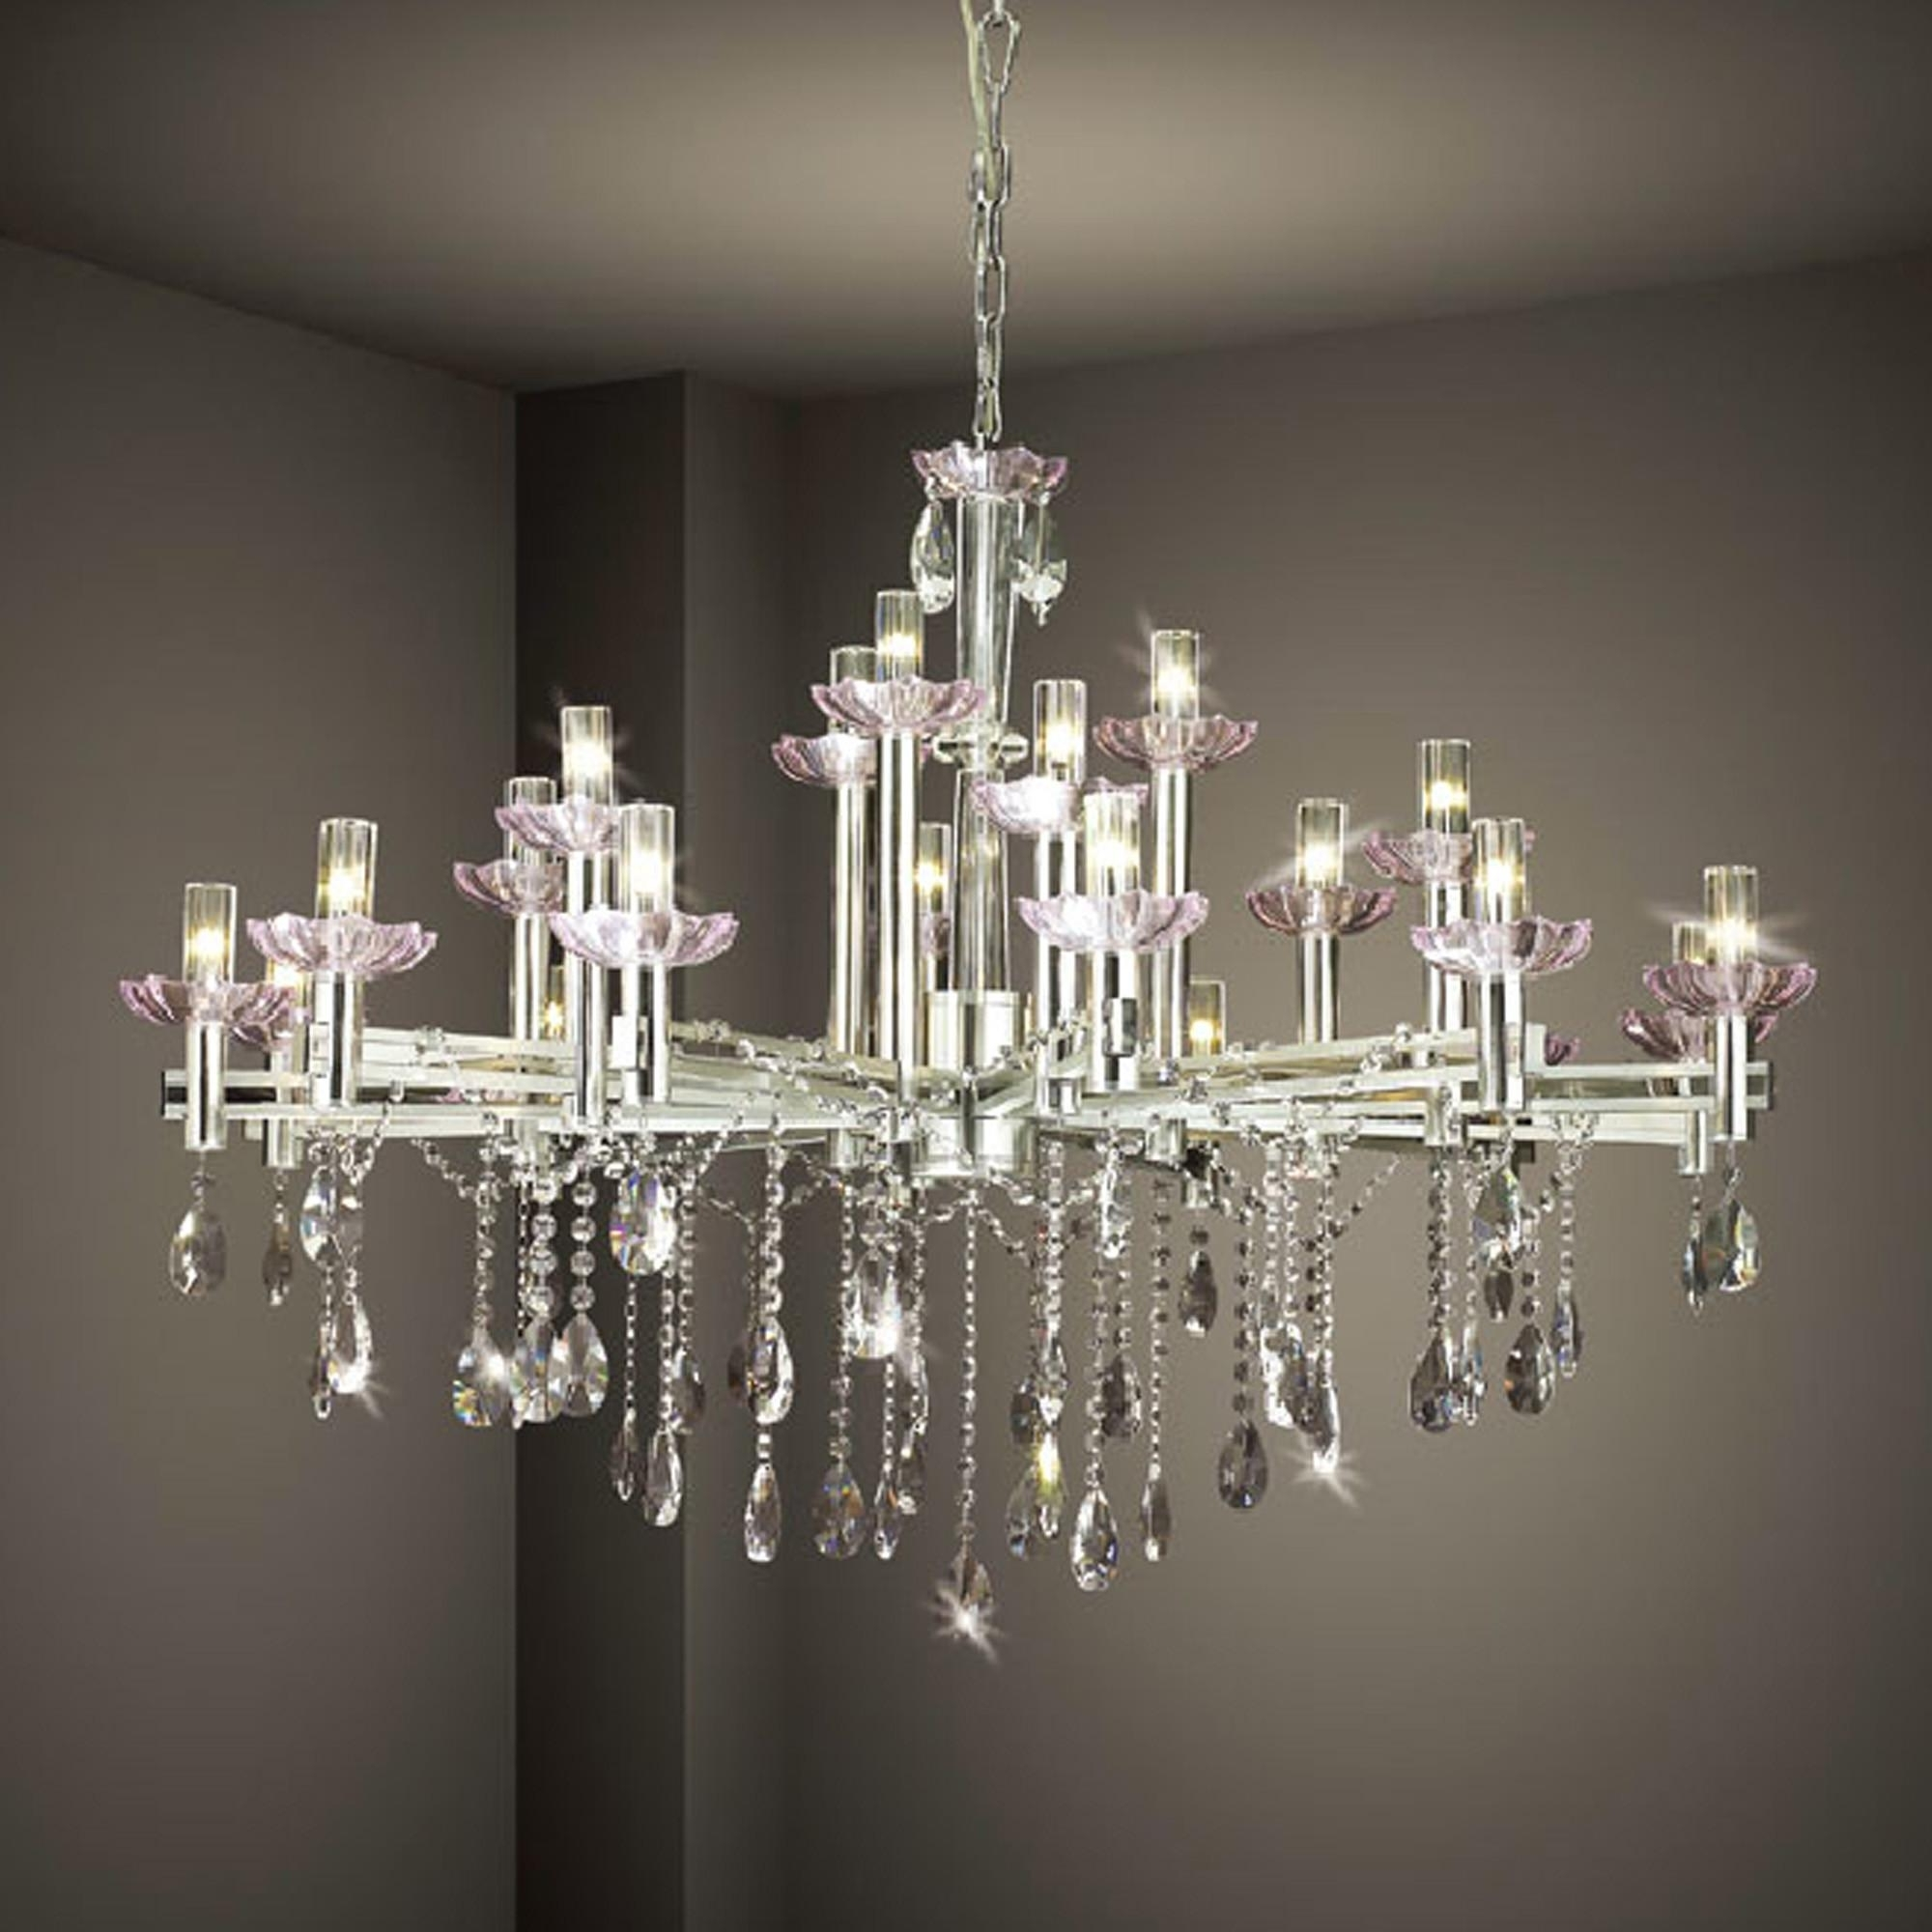 Chandeliers : Traditional Chandeliers Luxury Chandeliers Chandelier Throughout Current Traditional Chandeliers (View 9 of 15)